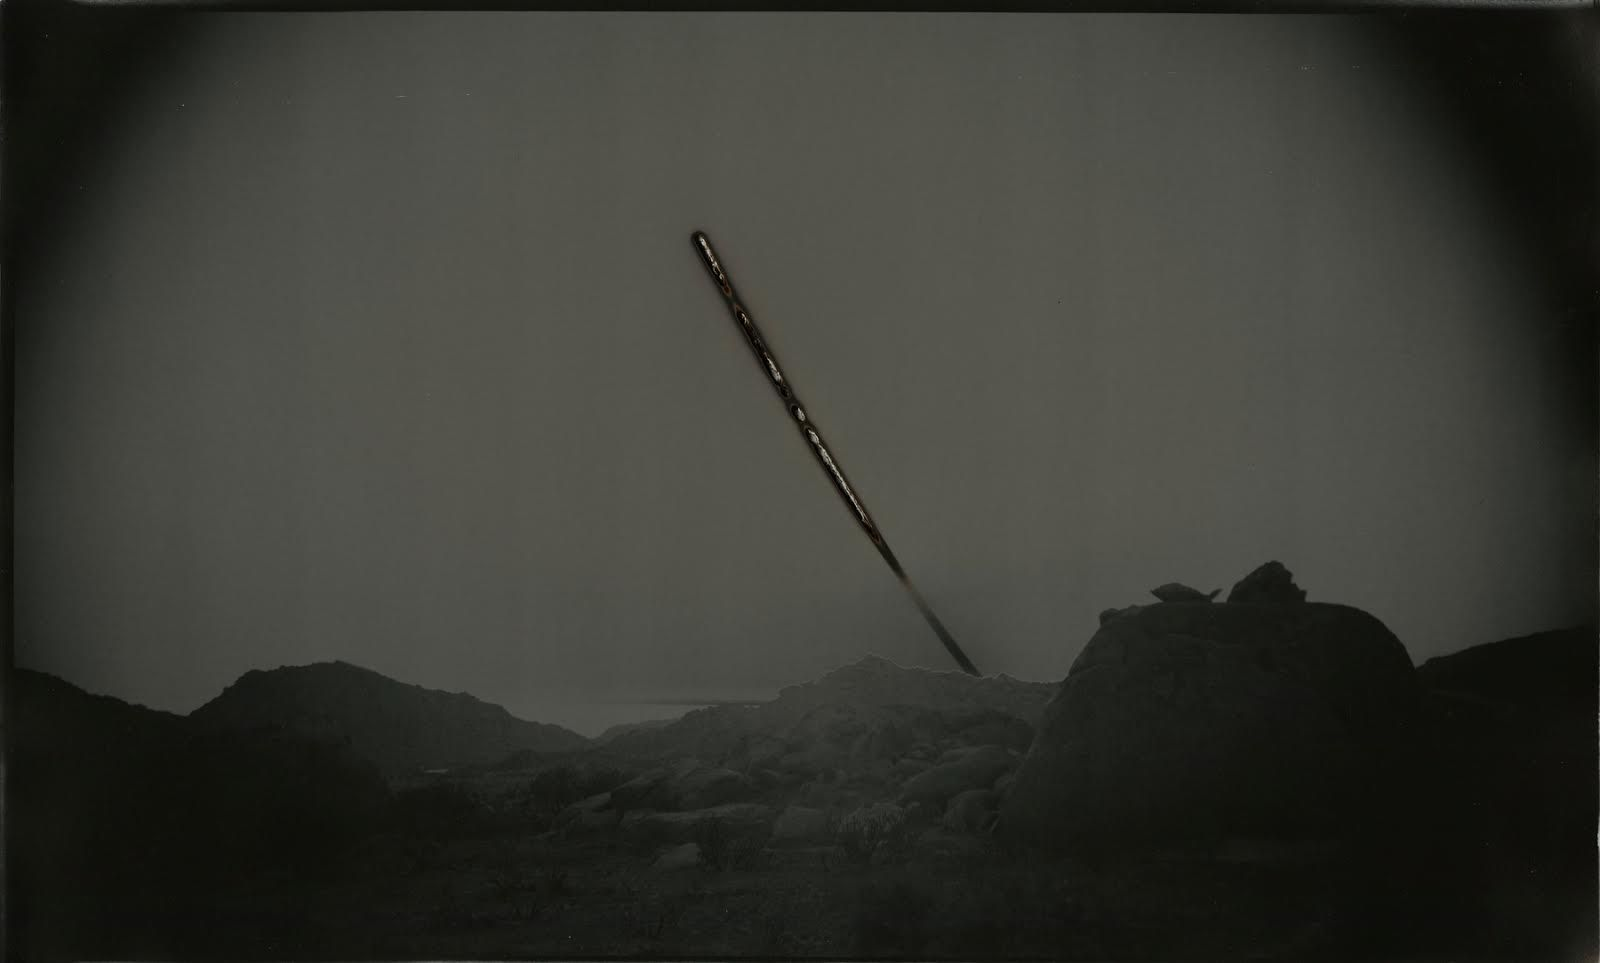 Chris McCaw,   Sunburned GSP #699 (Anza Borrego),  2013   Unique Gelatin Silver Paper Negative, 12 x 20  inches  Image courtesy of Candela Books and Gallery